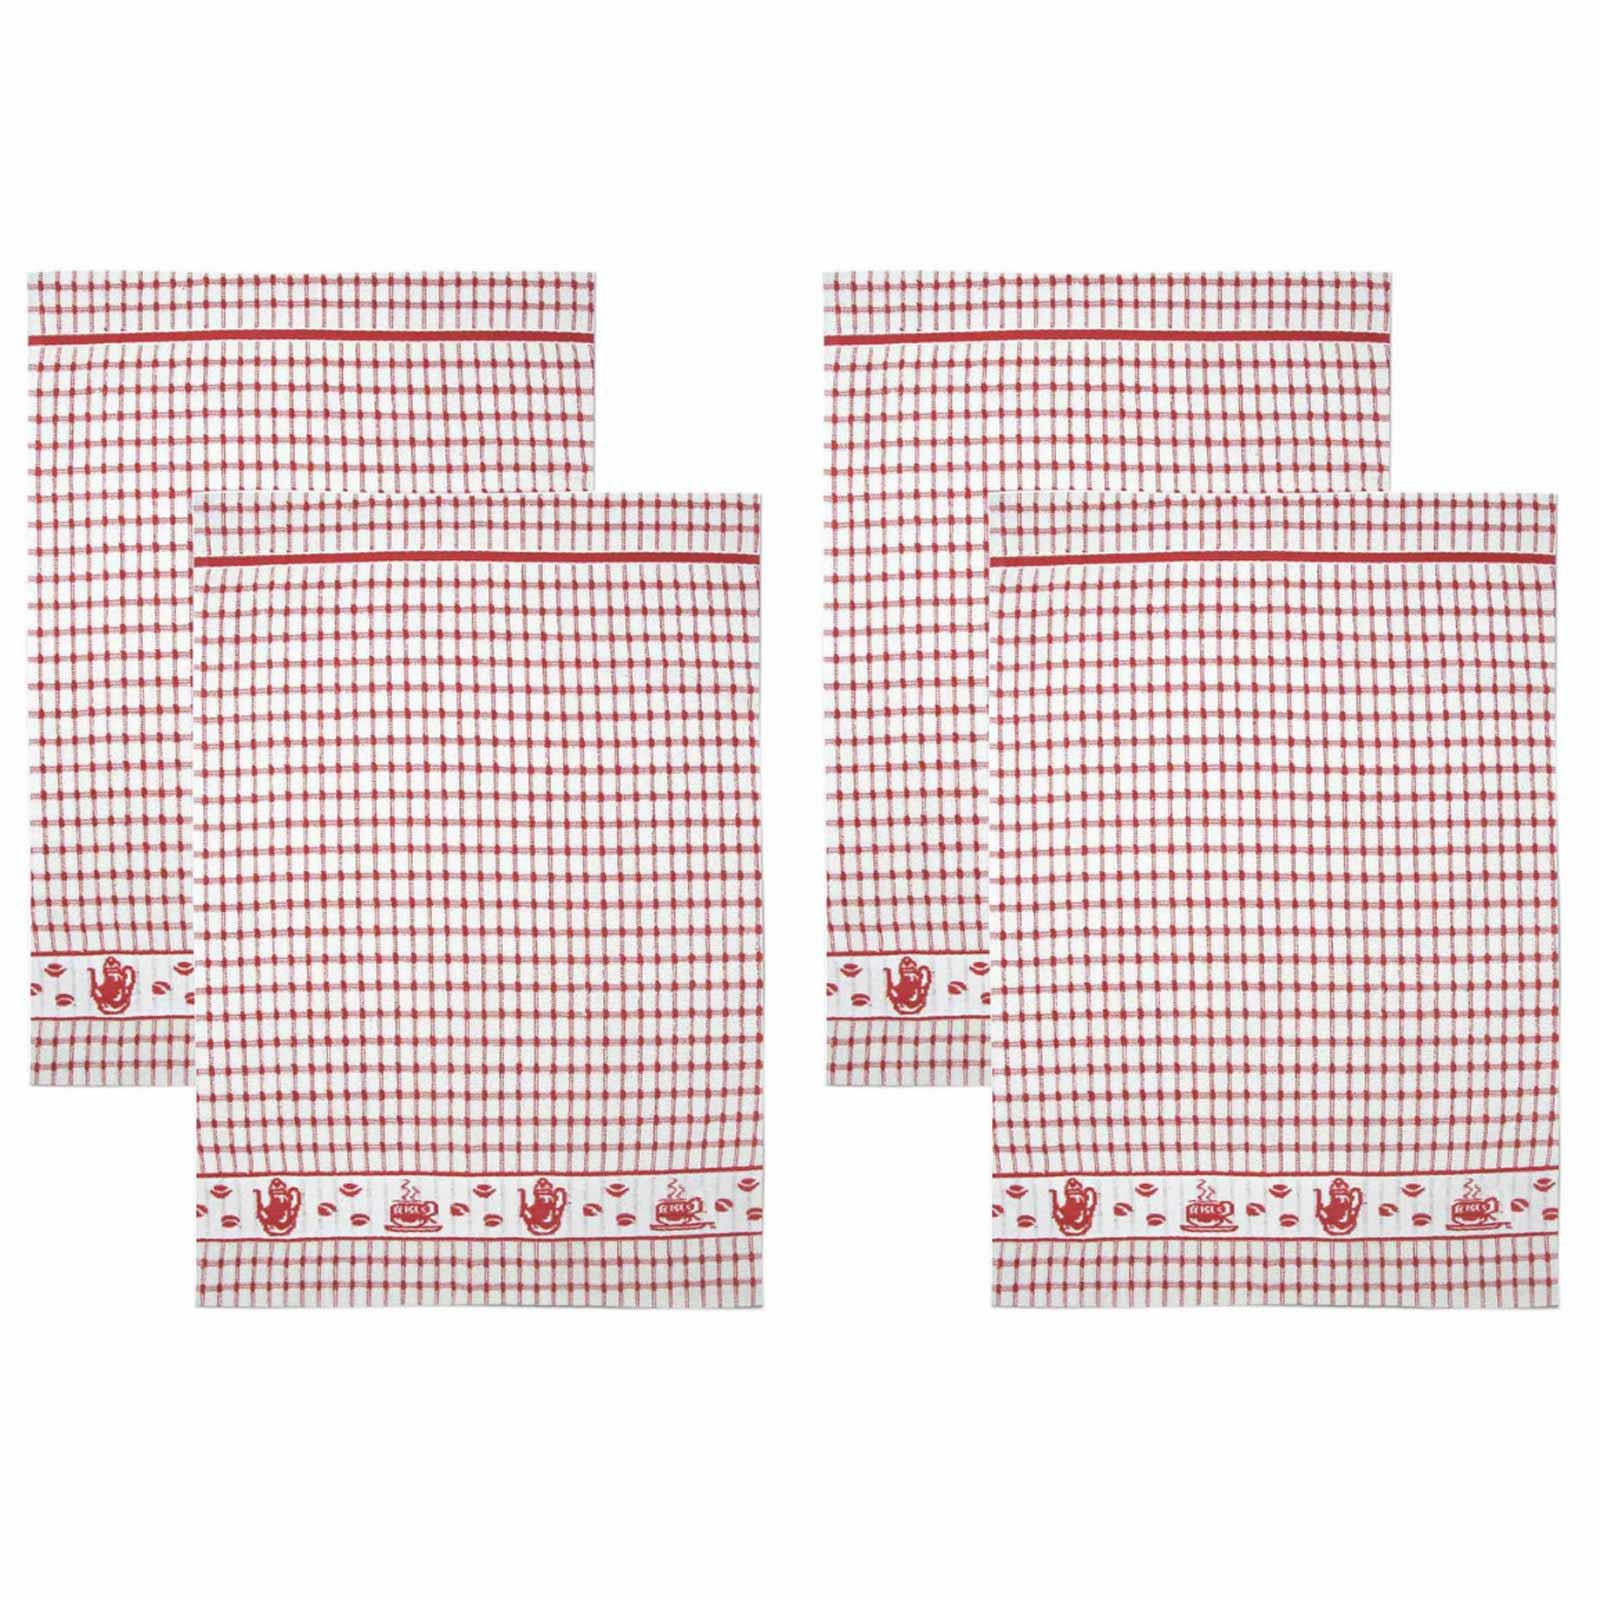 Packs-of-2-4-6-12-Tea-Towels-100-Cotton-Terry-Kitchen-Dish-Drying-Towel-Sets thumbnail 40